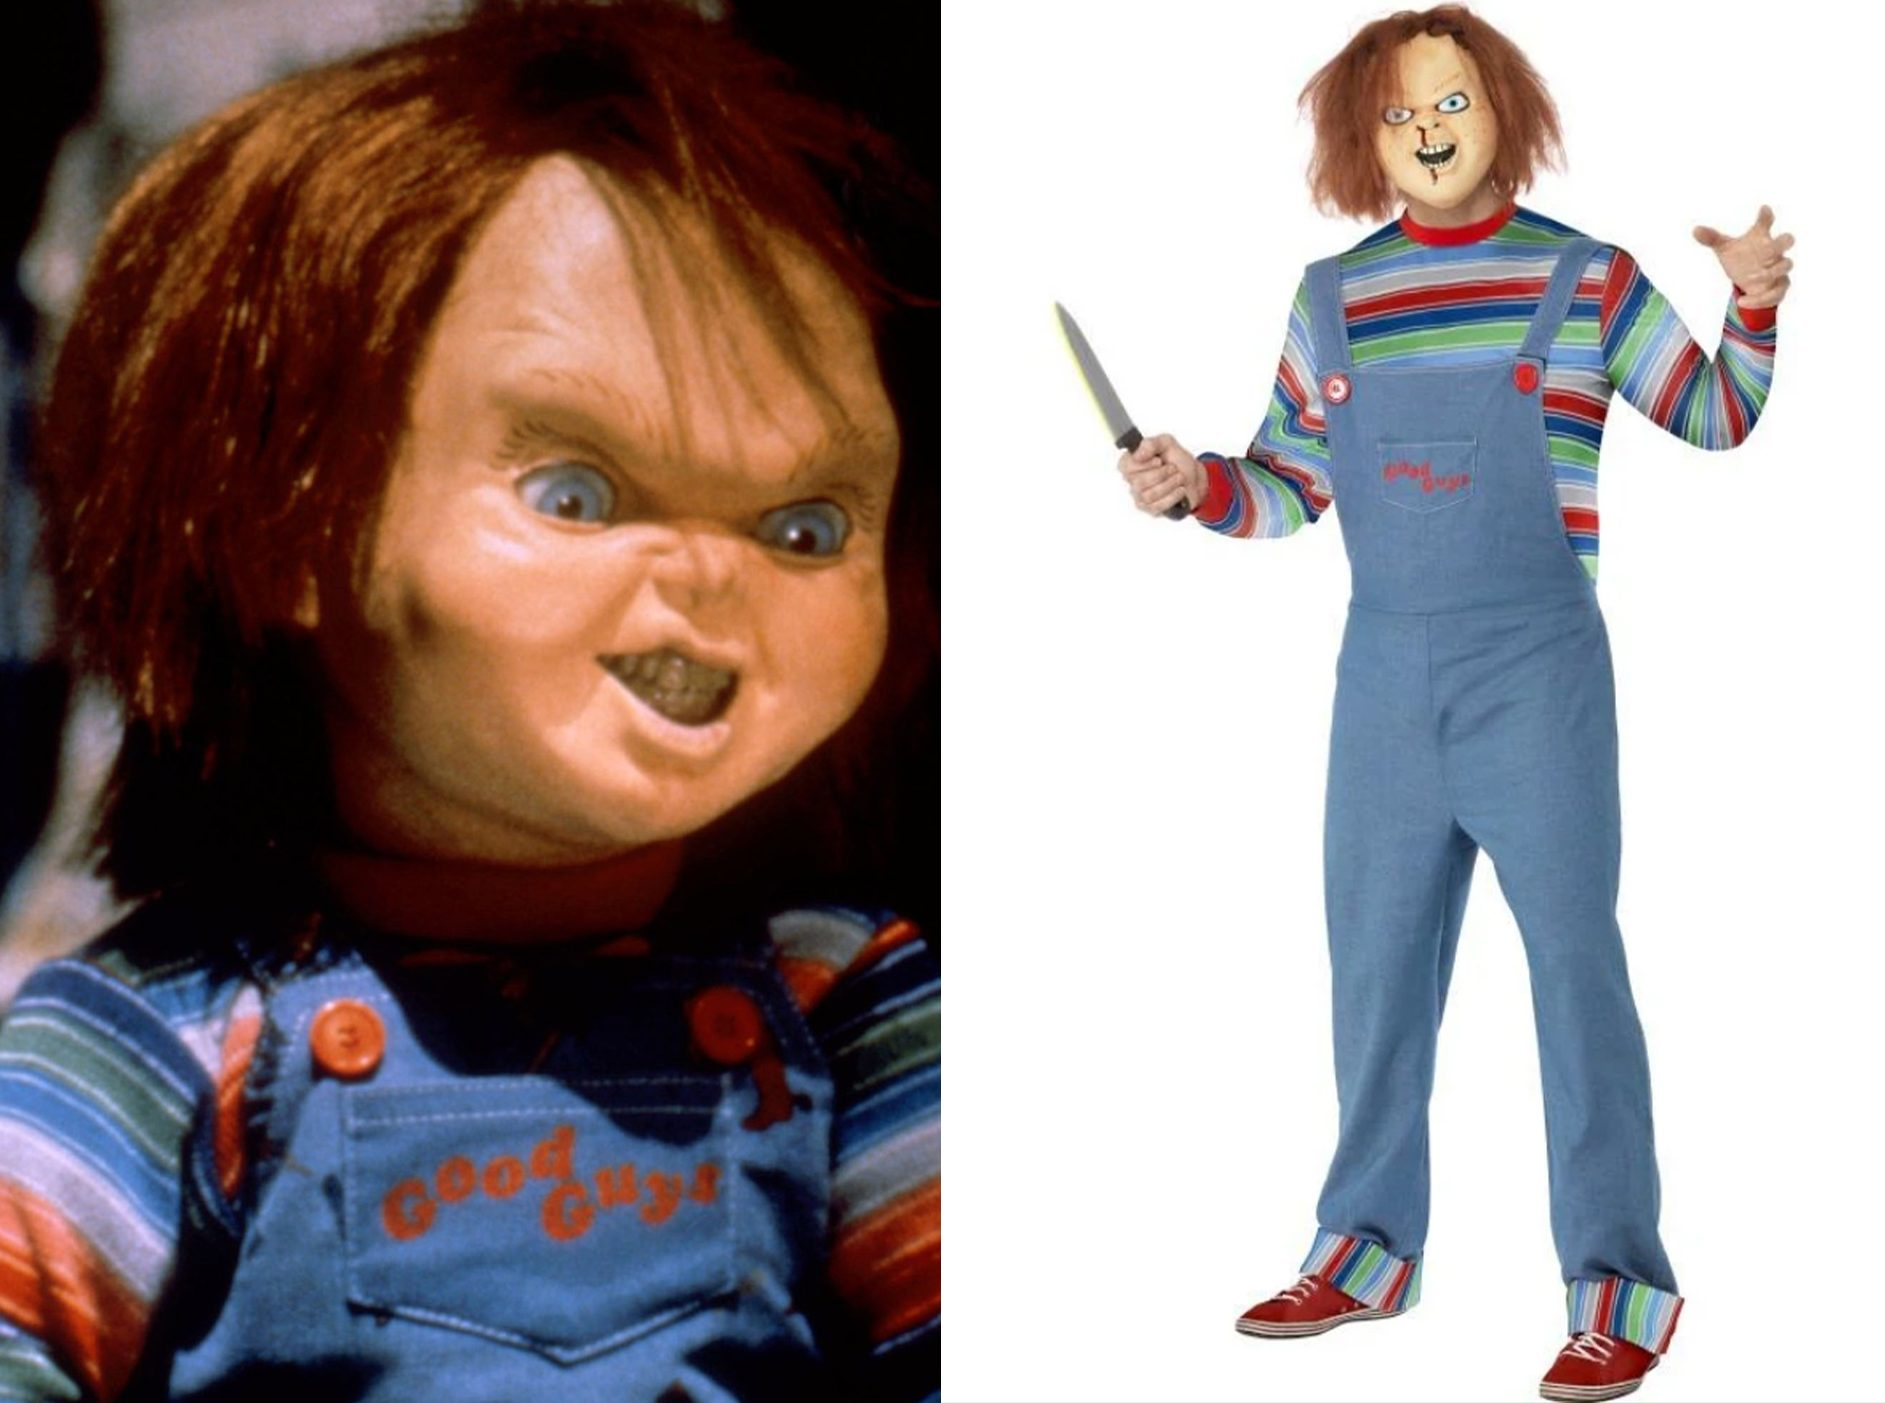 Chucky e1634910155594 15 Halloween Costumes Inspired By The 80s - Who Will You Go As?